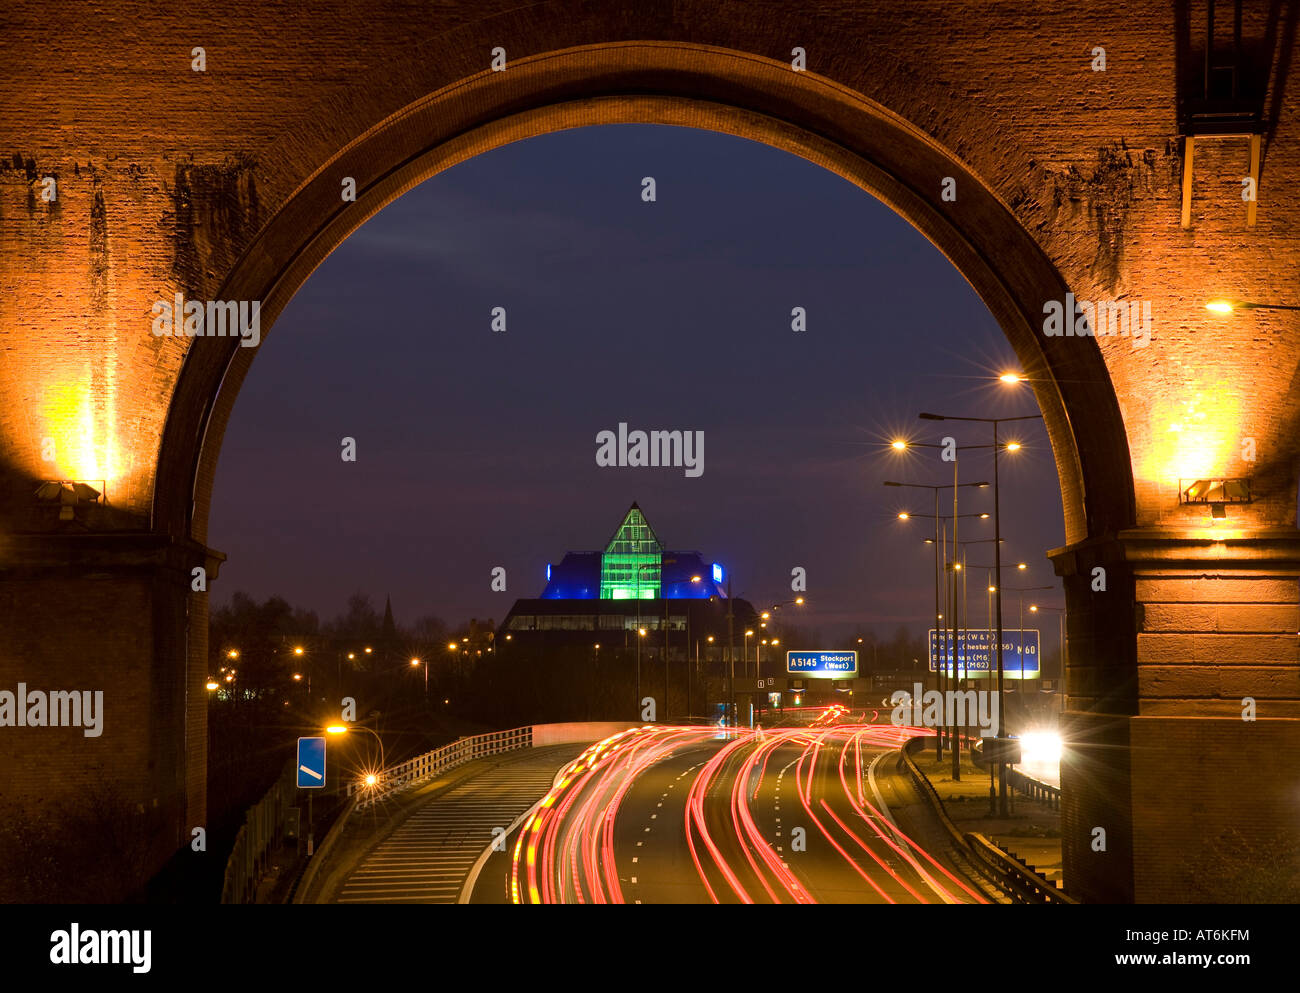 M60 Motorway, Stockport Pyramid and Viaduct at night. Stockport, Greater Manchester, United Kingdom. - Stock Image